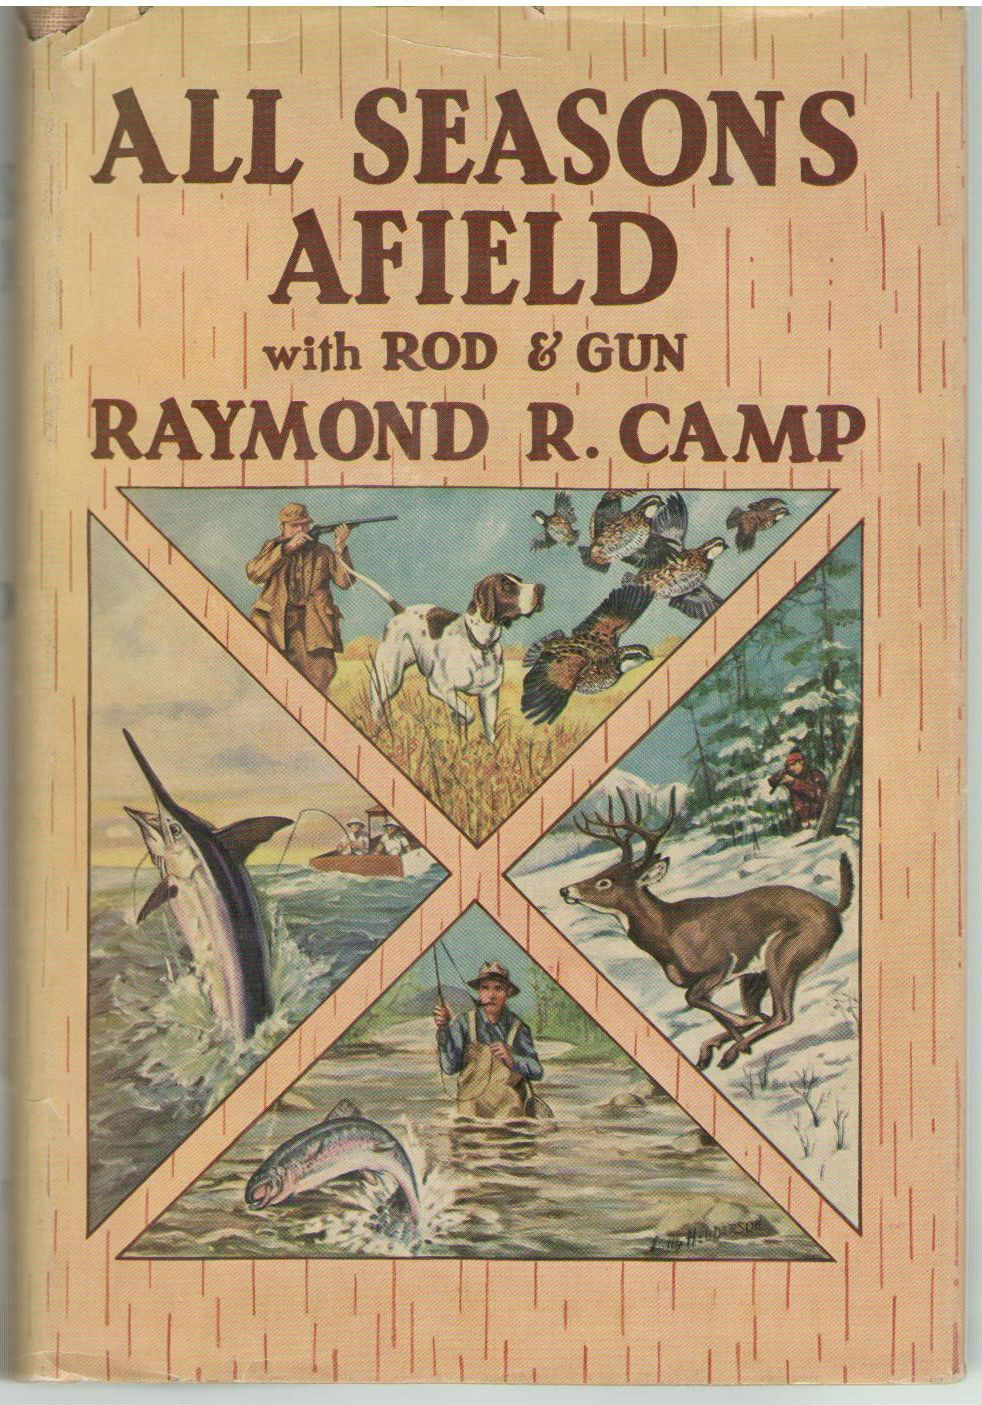 All seasons afield with rod and gun ([Whittlesey house sports series]), Camp, Raymond R